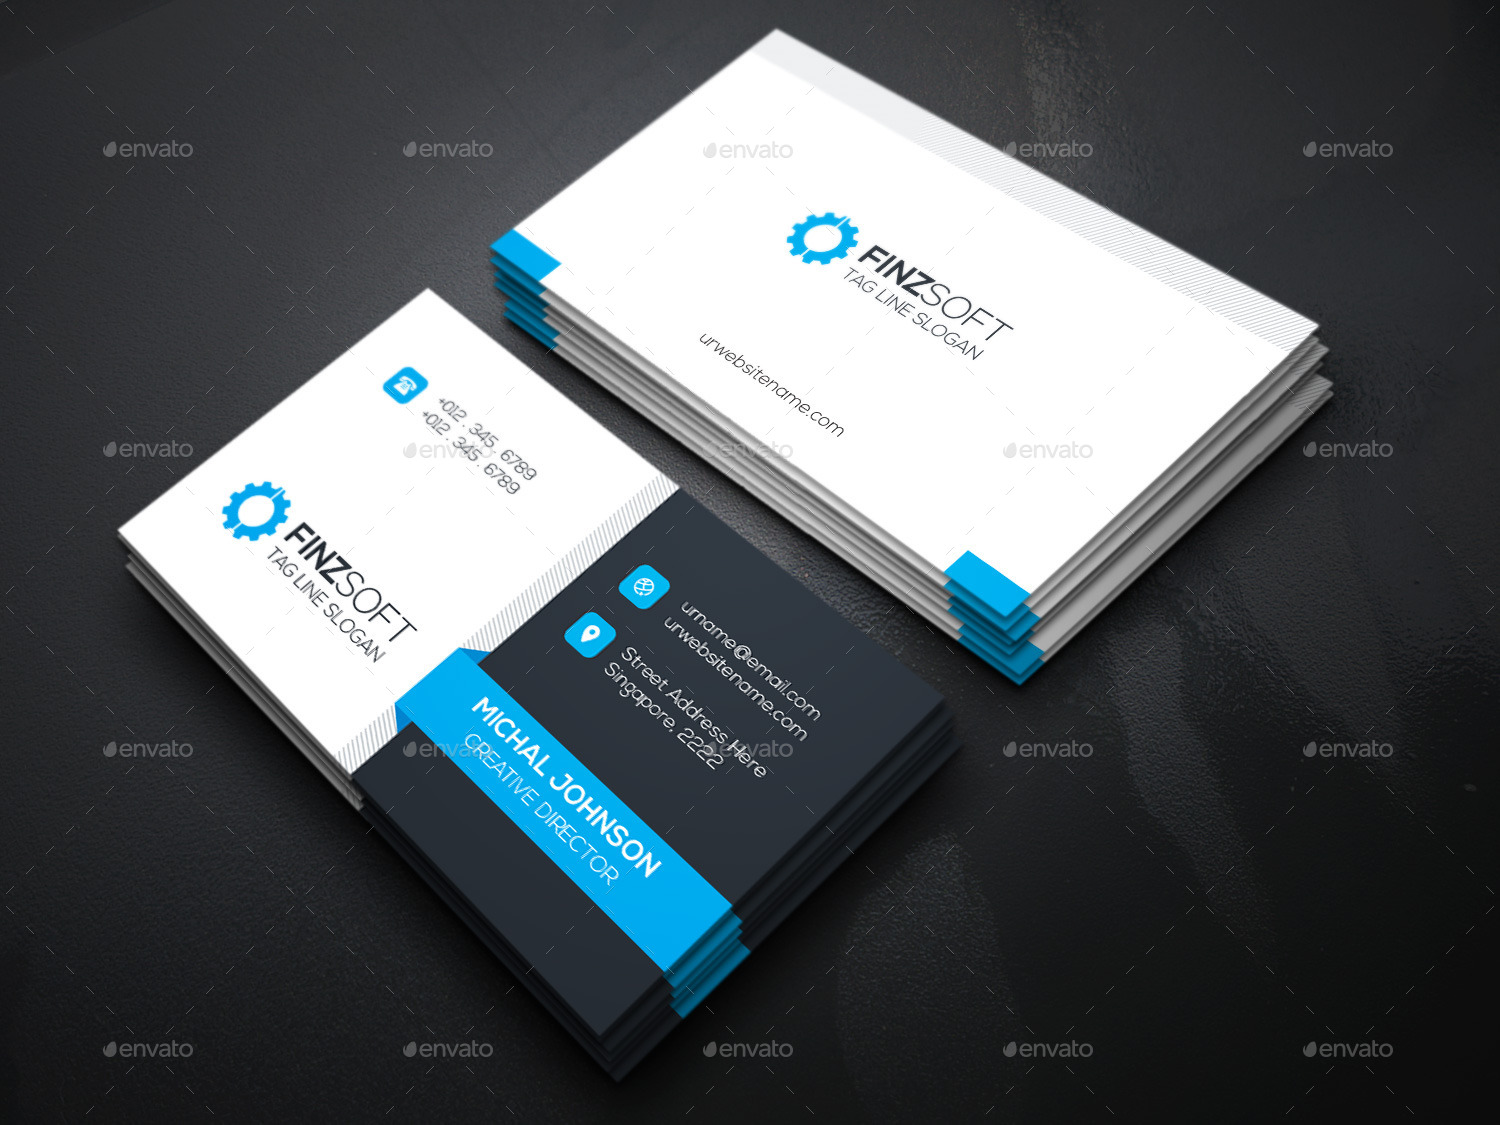 Finzsoft Business Cards by generousart | GraphicRiver